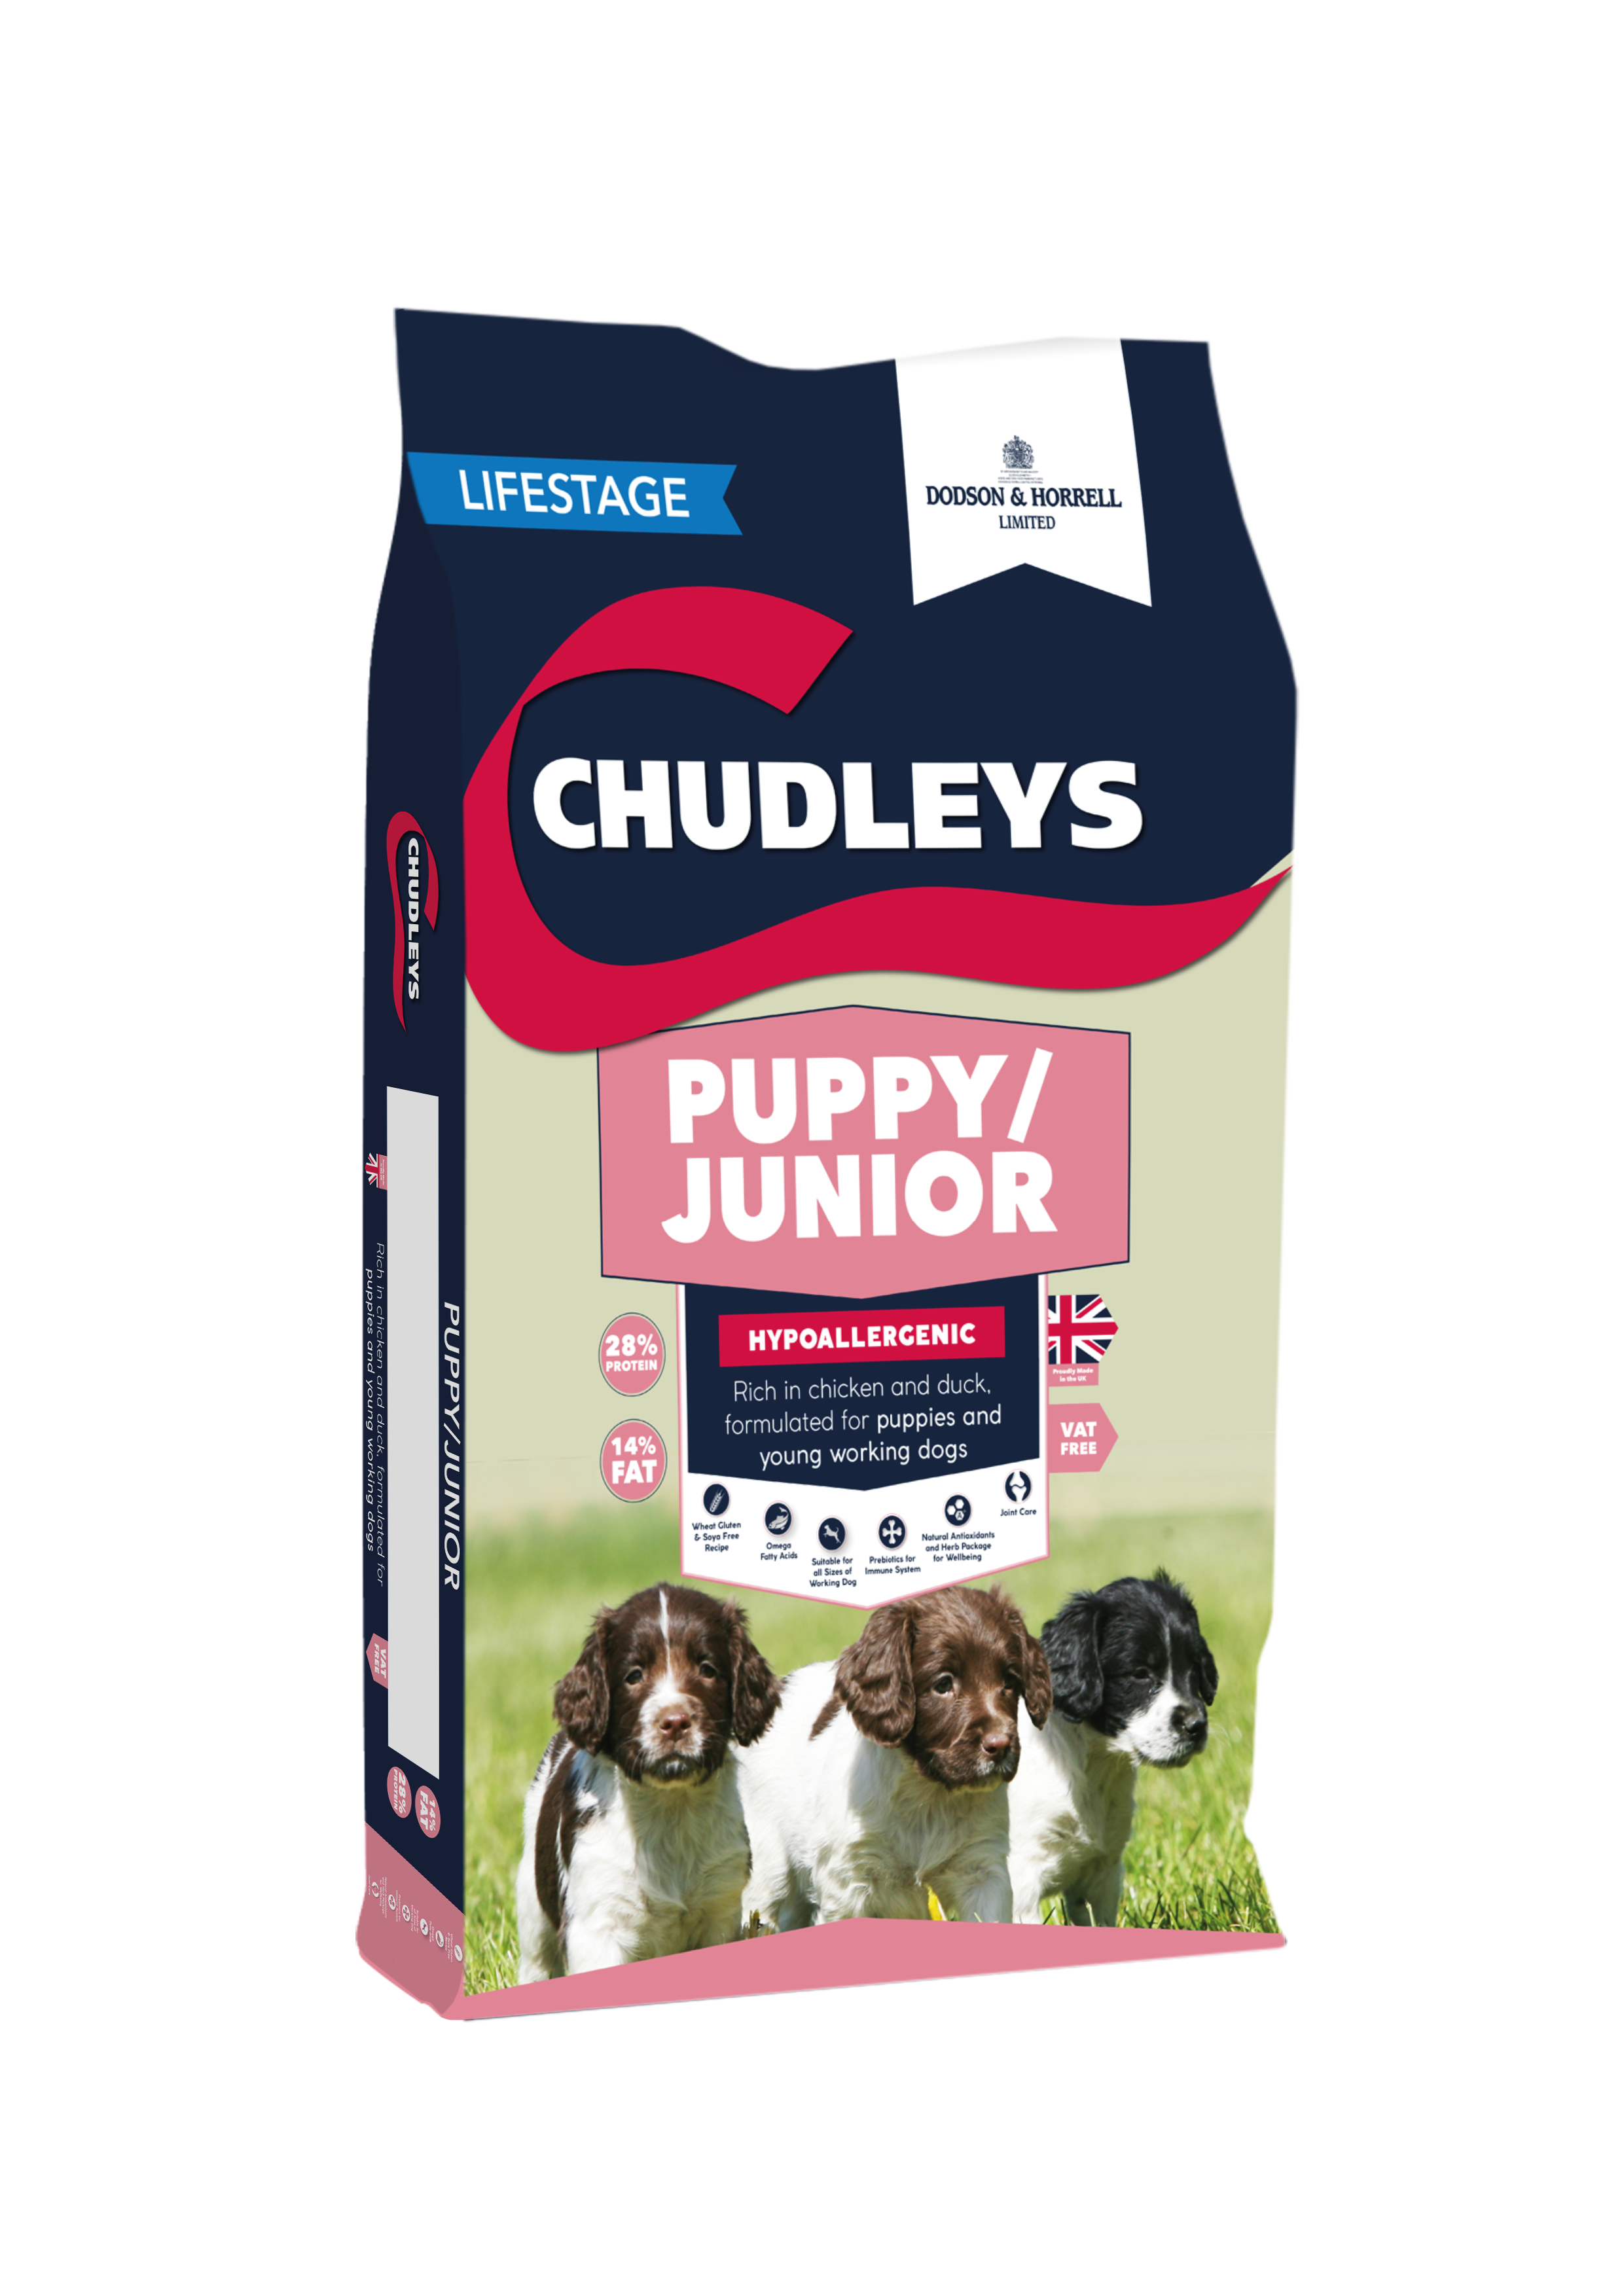 Chudleys Puppy Junior 12kg Bag